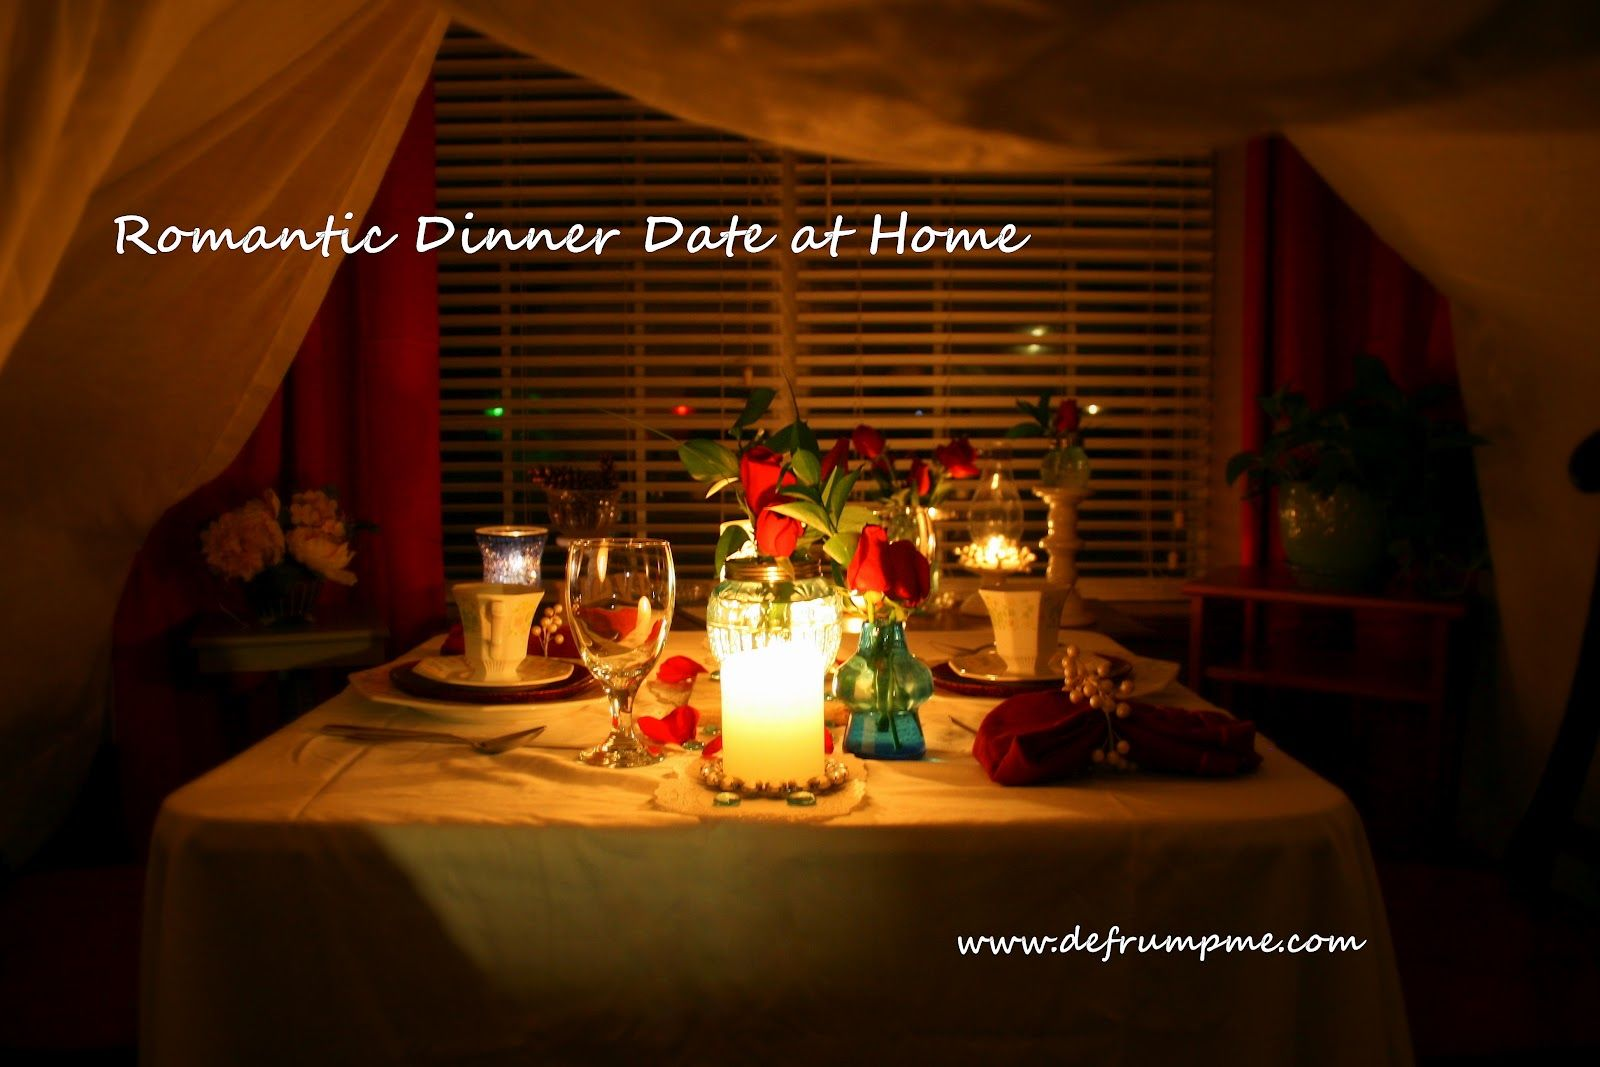 Pretty Ideas For A Romantic Night At Home. Romantic Dinner Date at Home  Make a tent out of white sheets in the living room set table under it and light lots candles romantic home date Google Search Romance Pinterest